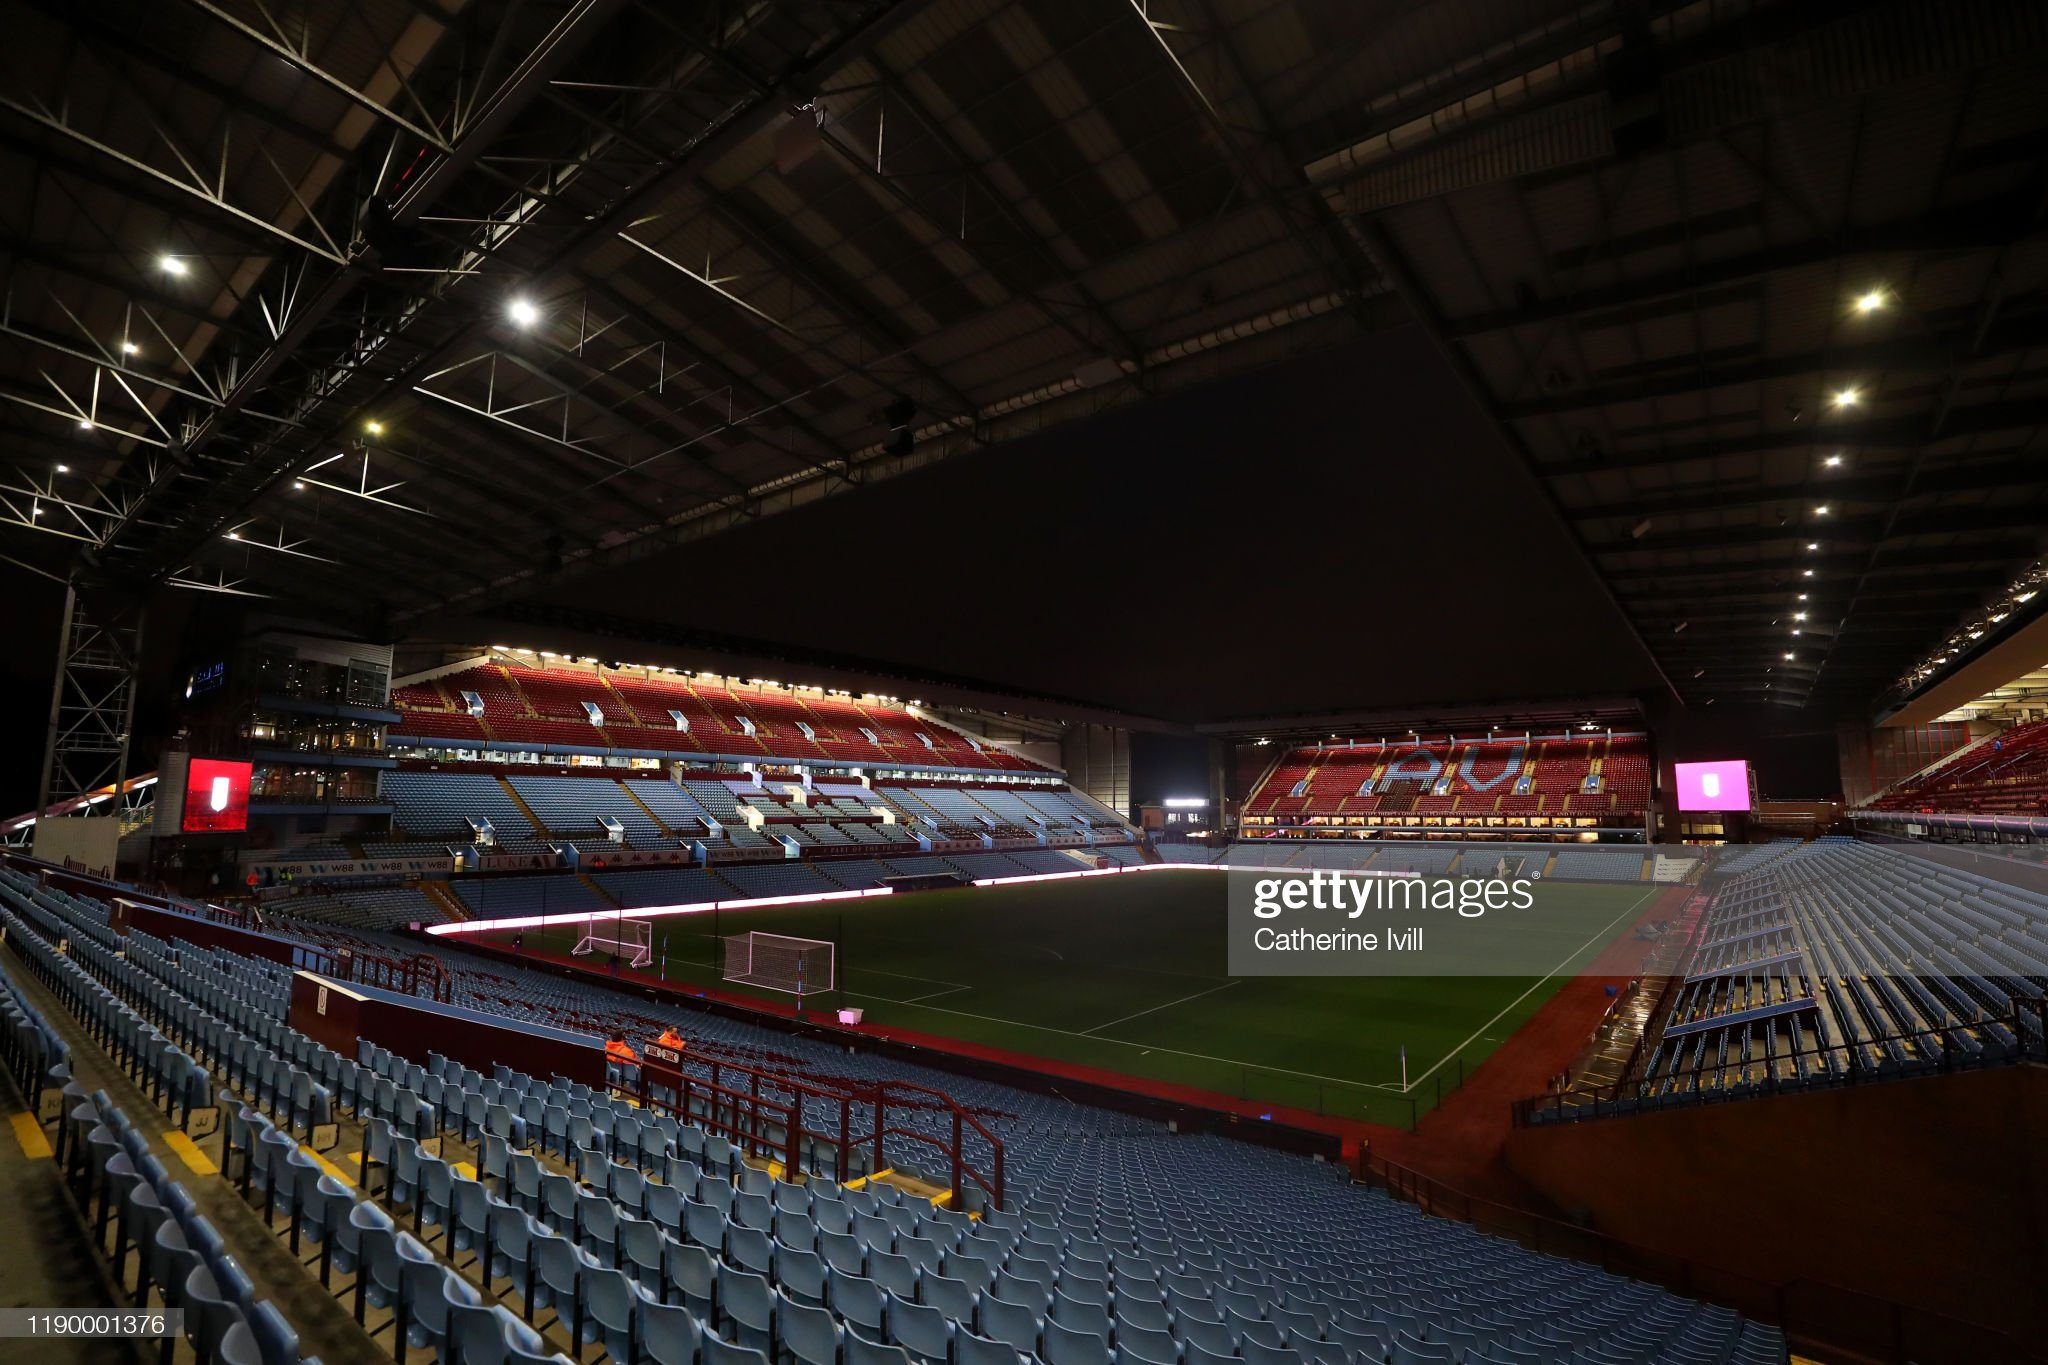 Aston Villa v Leicester preview, prediction and odds